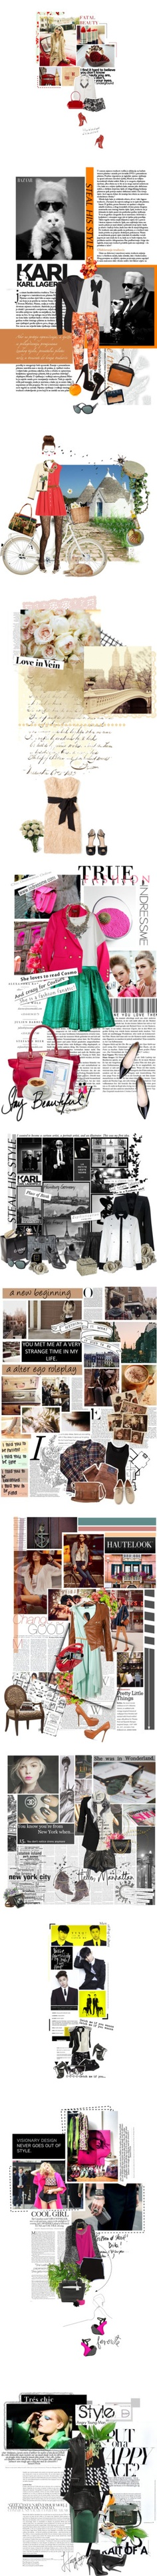 """""""Super Awesome Sets!! Vol. 3"""" by kokafor934 ❤ liked on Polyvore"""